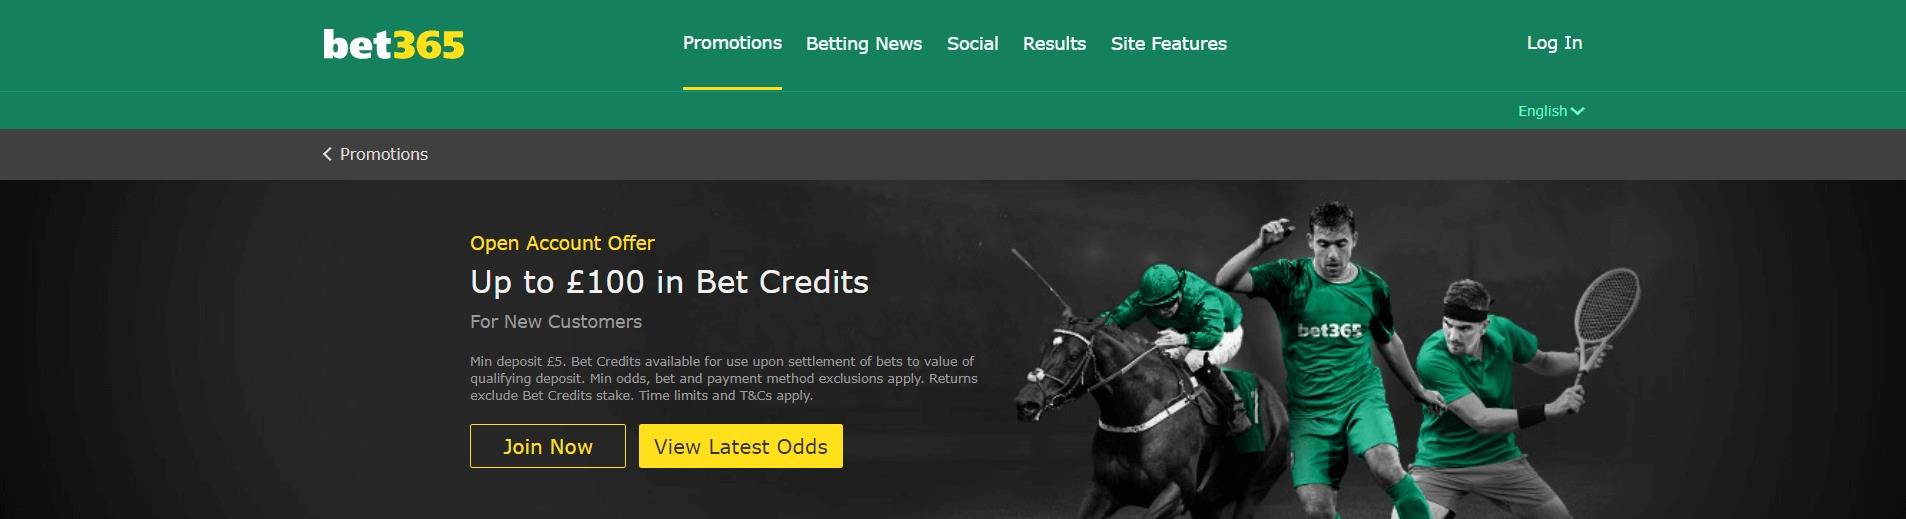 Olympics Betting Promotions